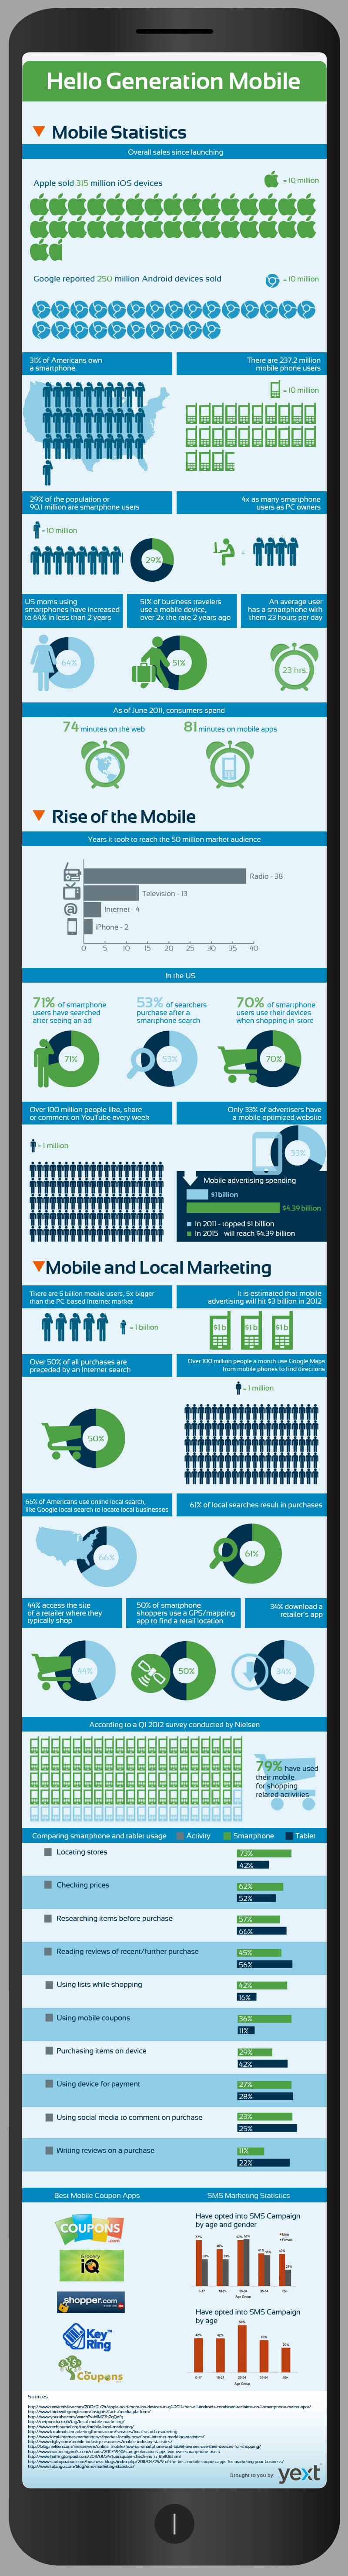 The Importance of Mobile for Local Business